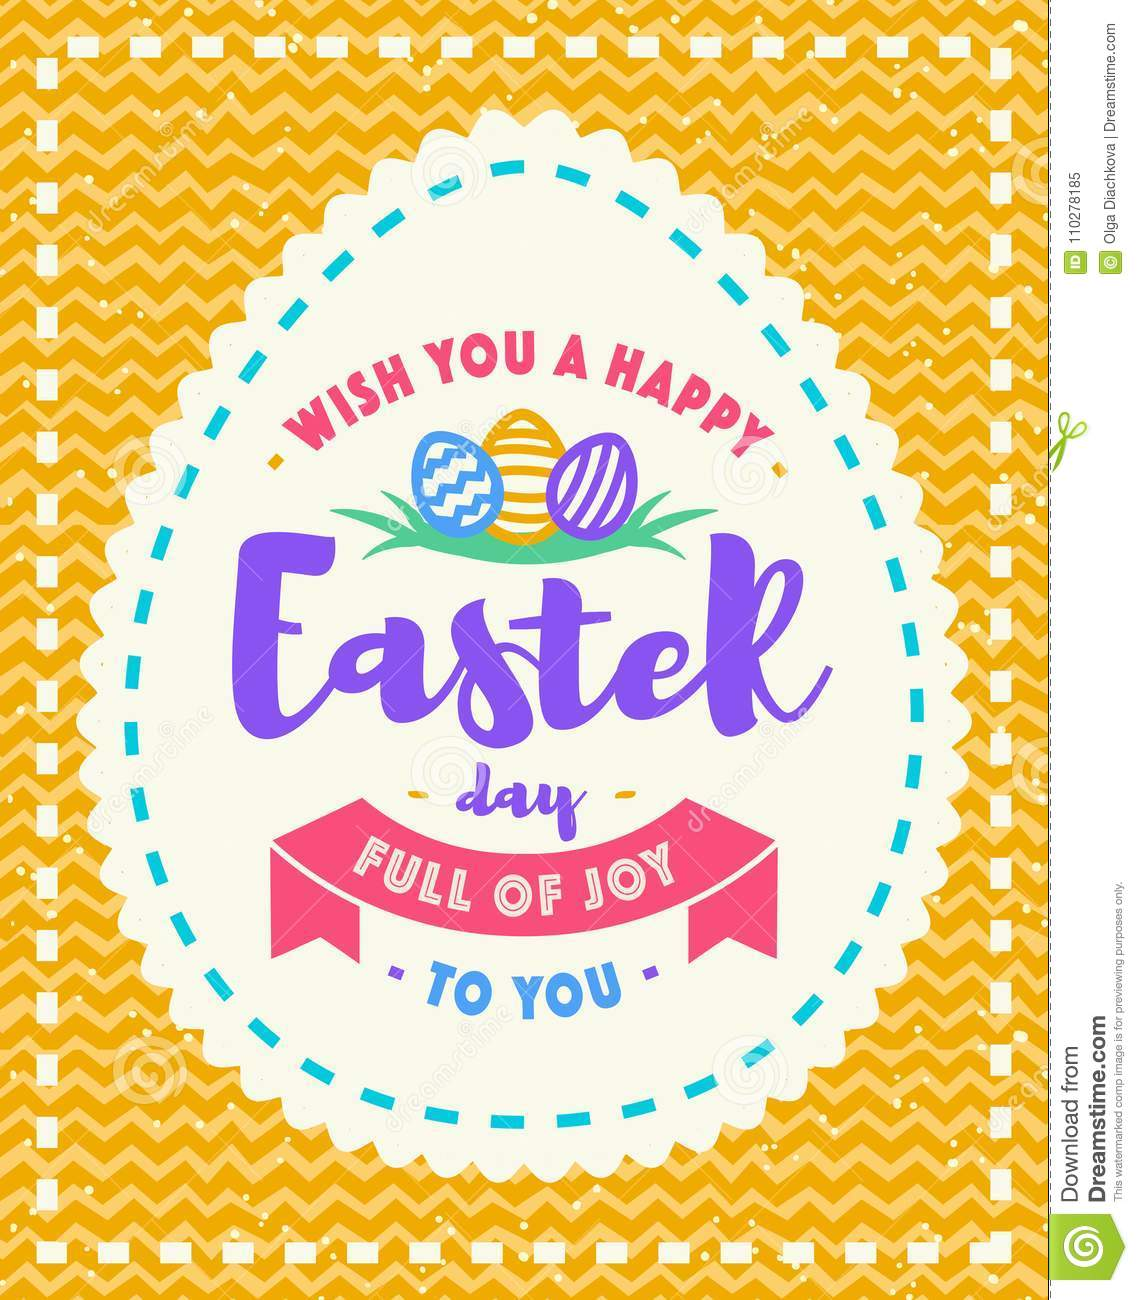 Vector Easter Greeting Card With Wish You A Happy Easter Day Symbol